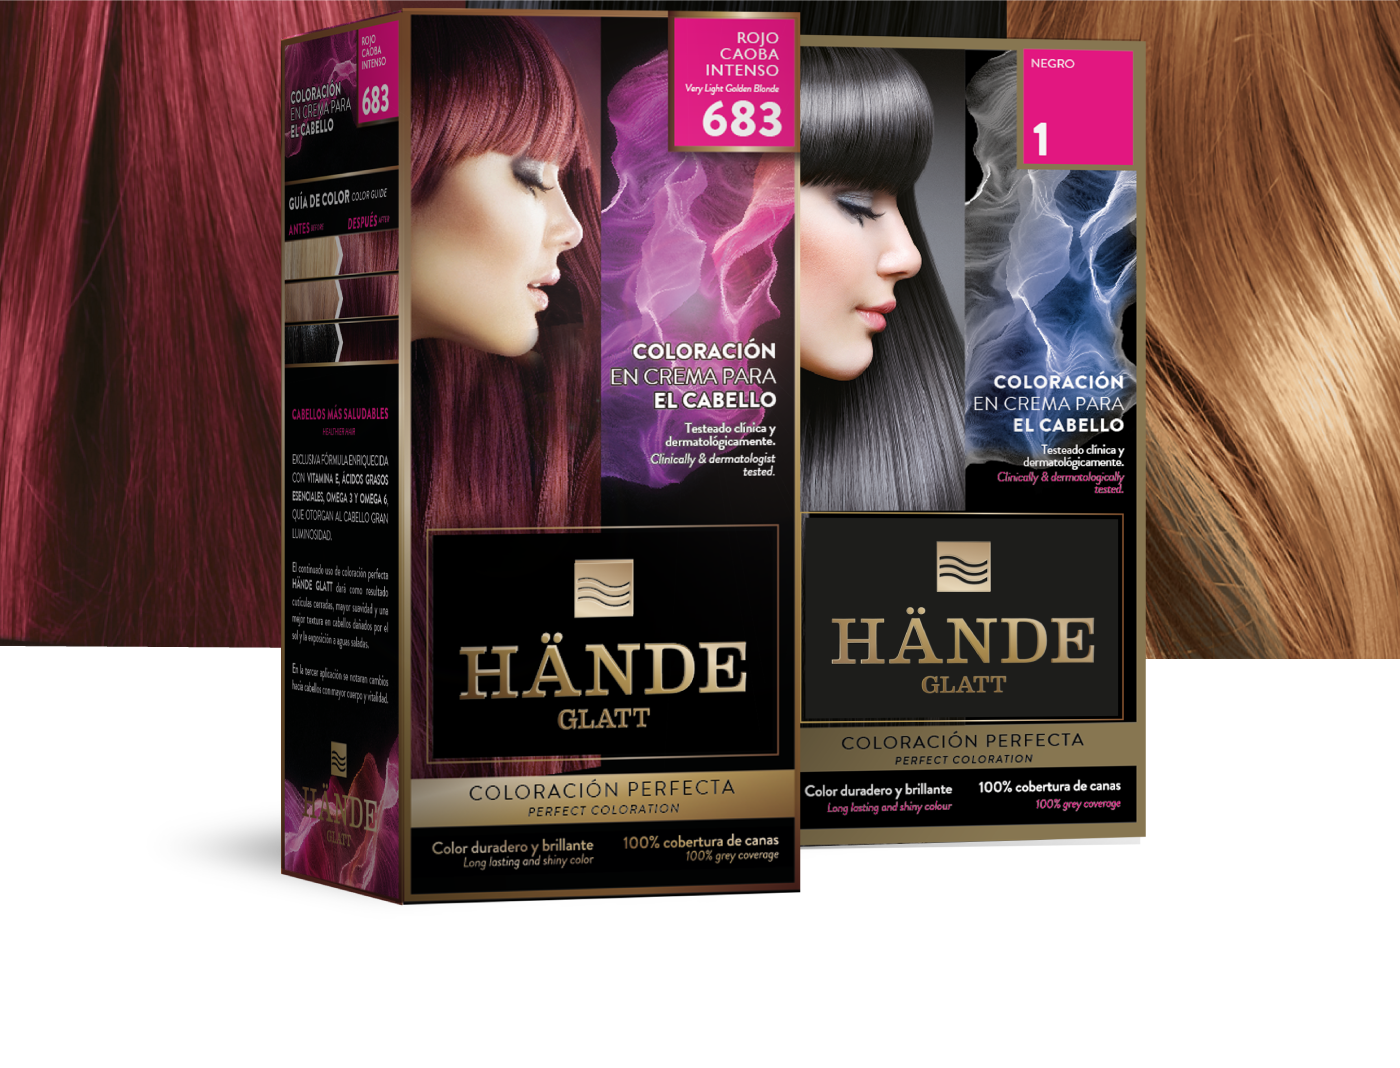 color hair beautycare hairsandstyles styles beauty woman colorhair